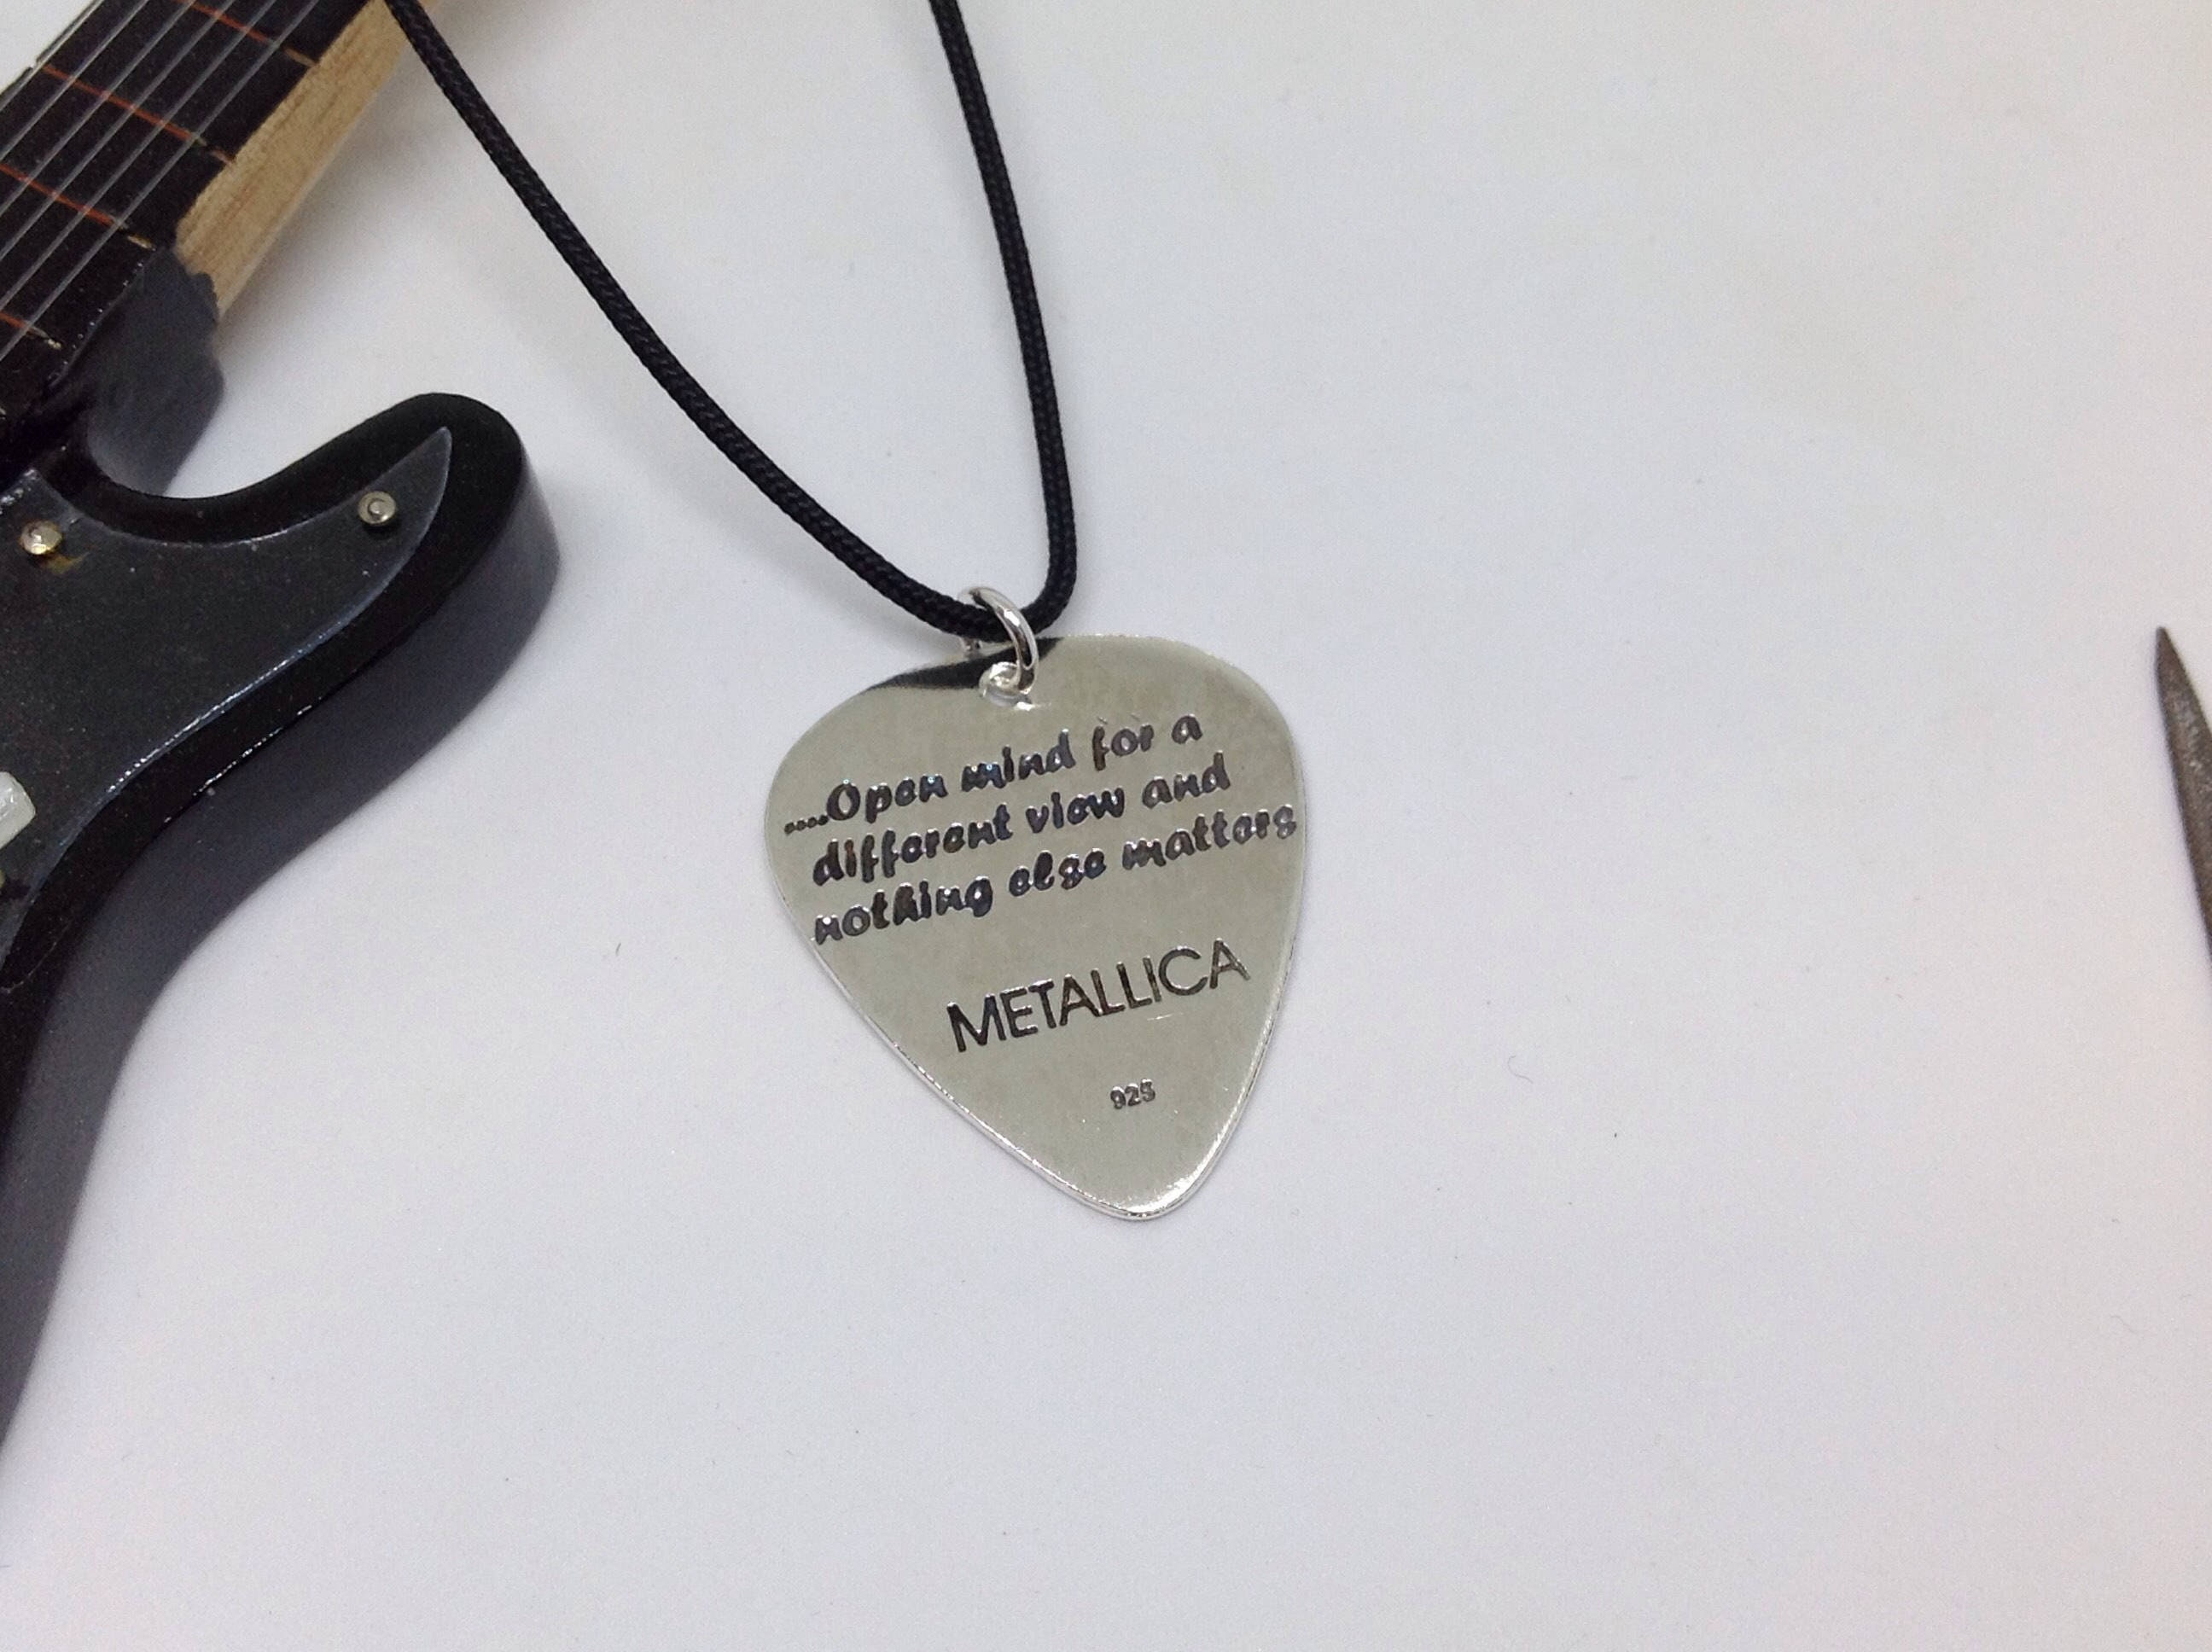 Handmade Silver Guitar Pick of Metallica Personalize handmade